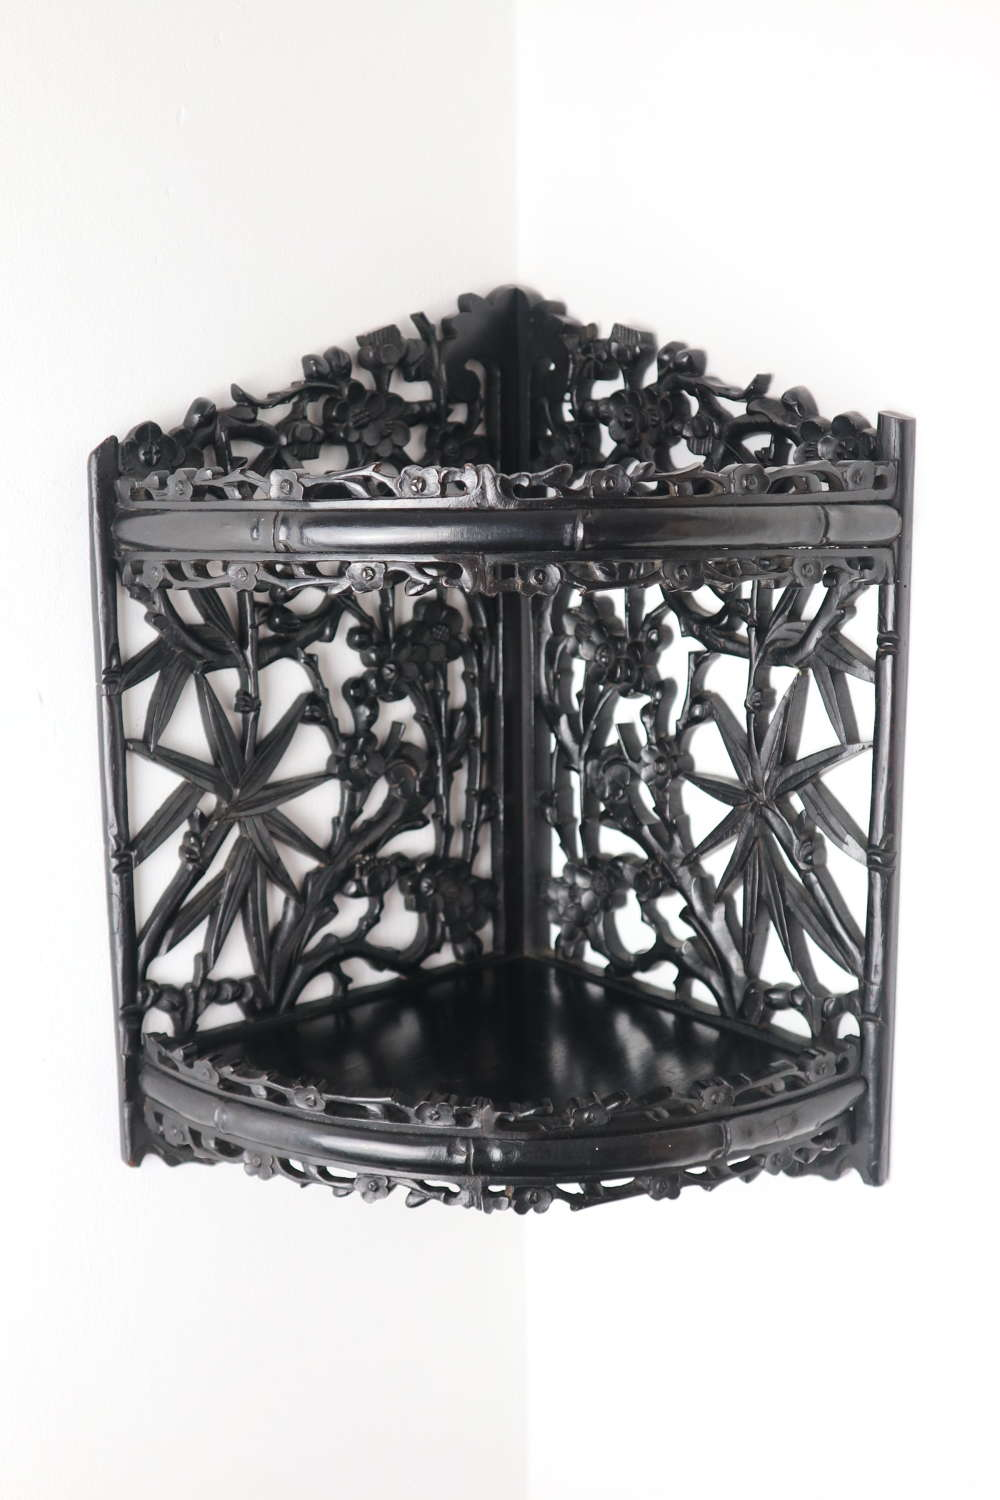 Aesthetic Movement / Anglo-Japanese Ebonised Carved Shelves c.1880.